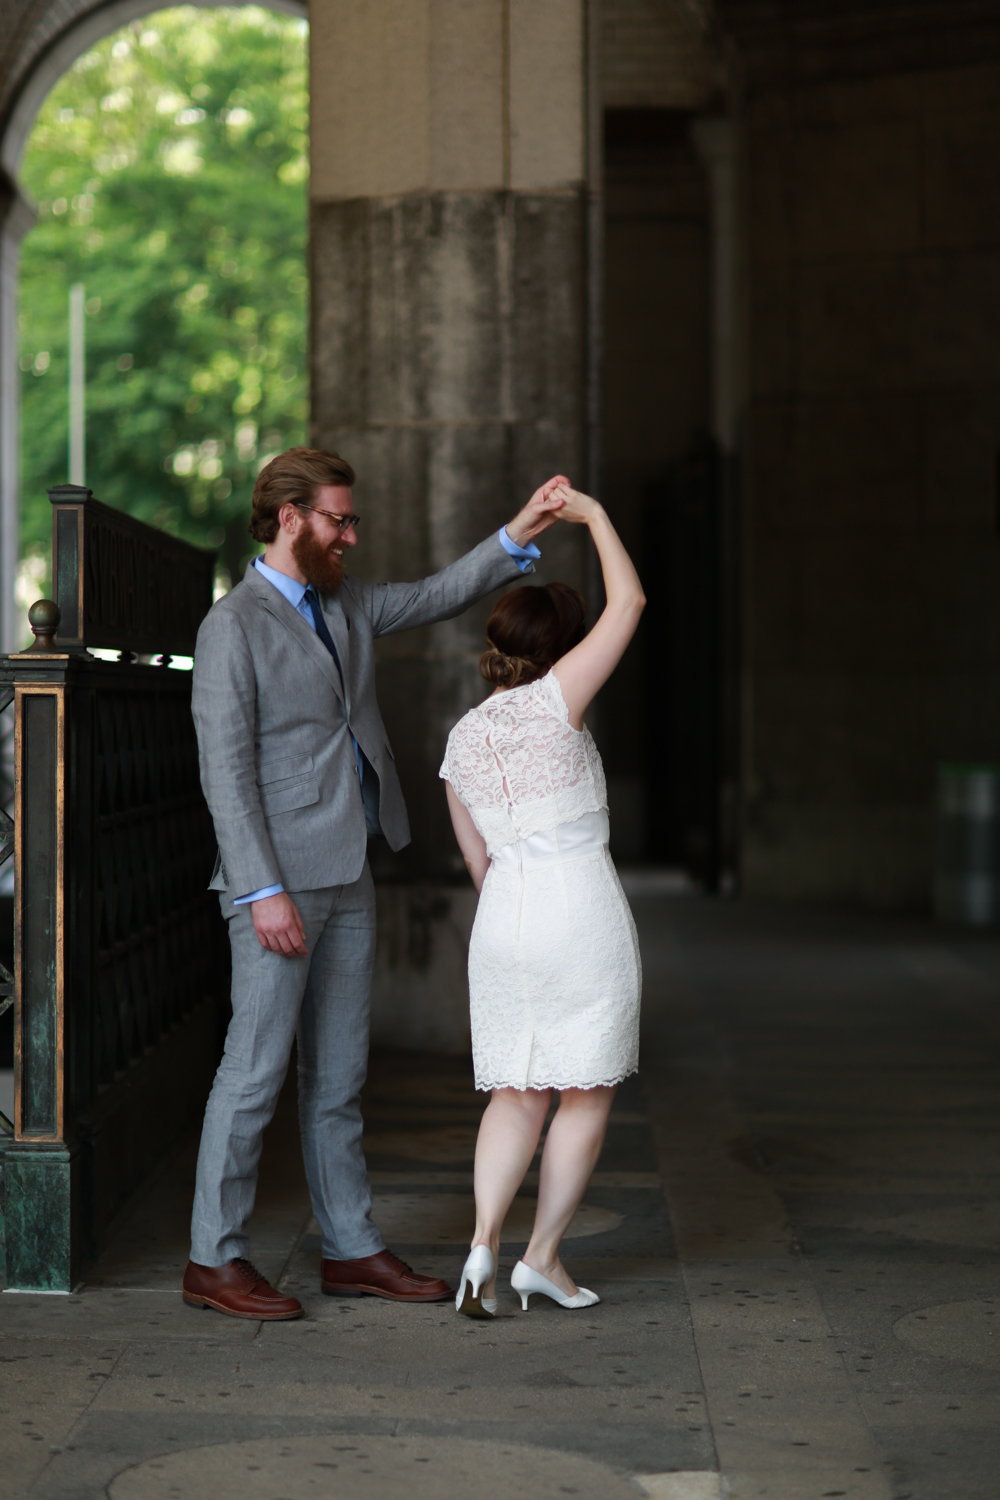 NYC Bride and groom dancing together